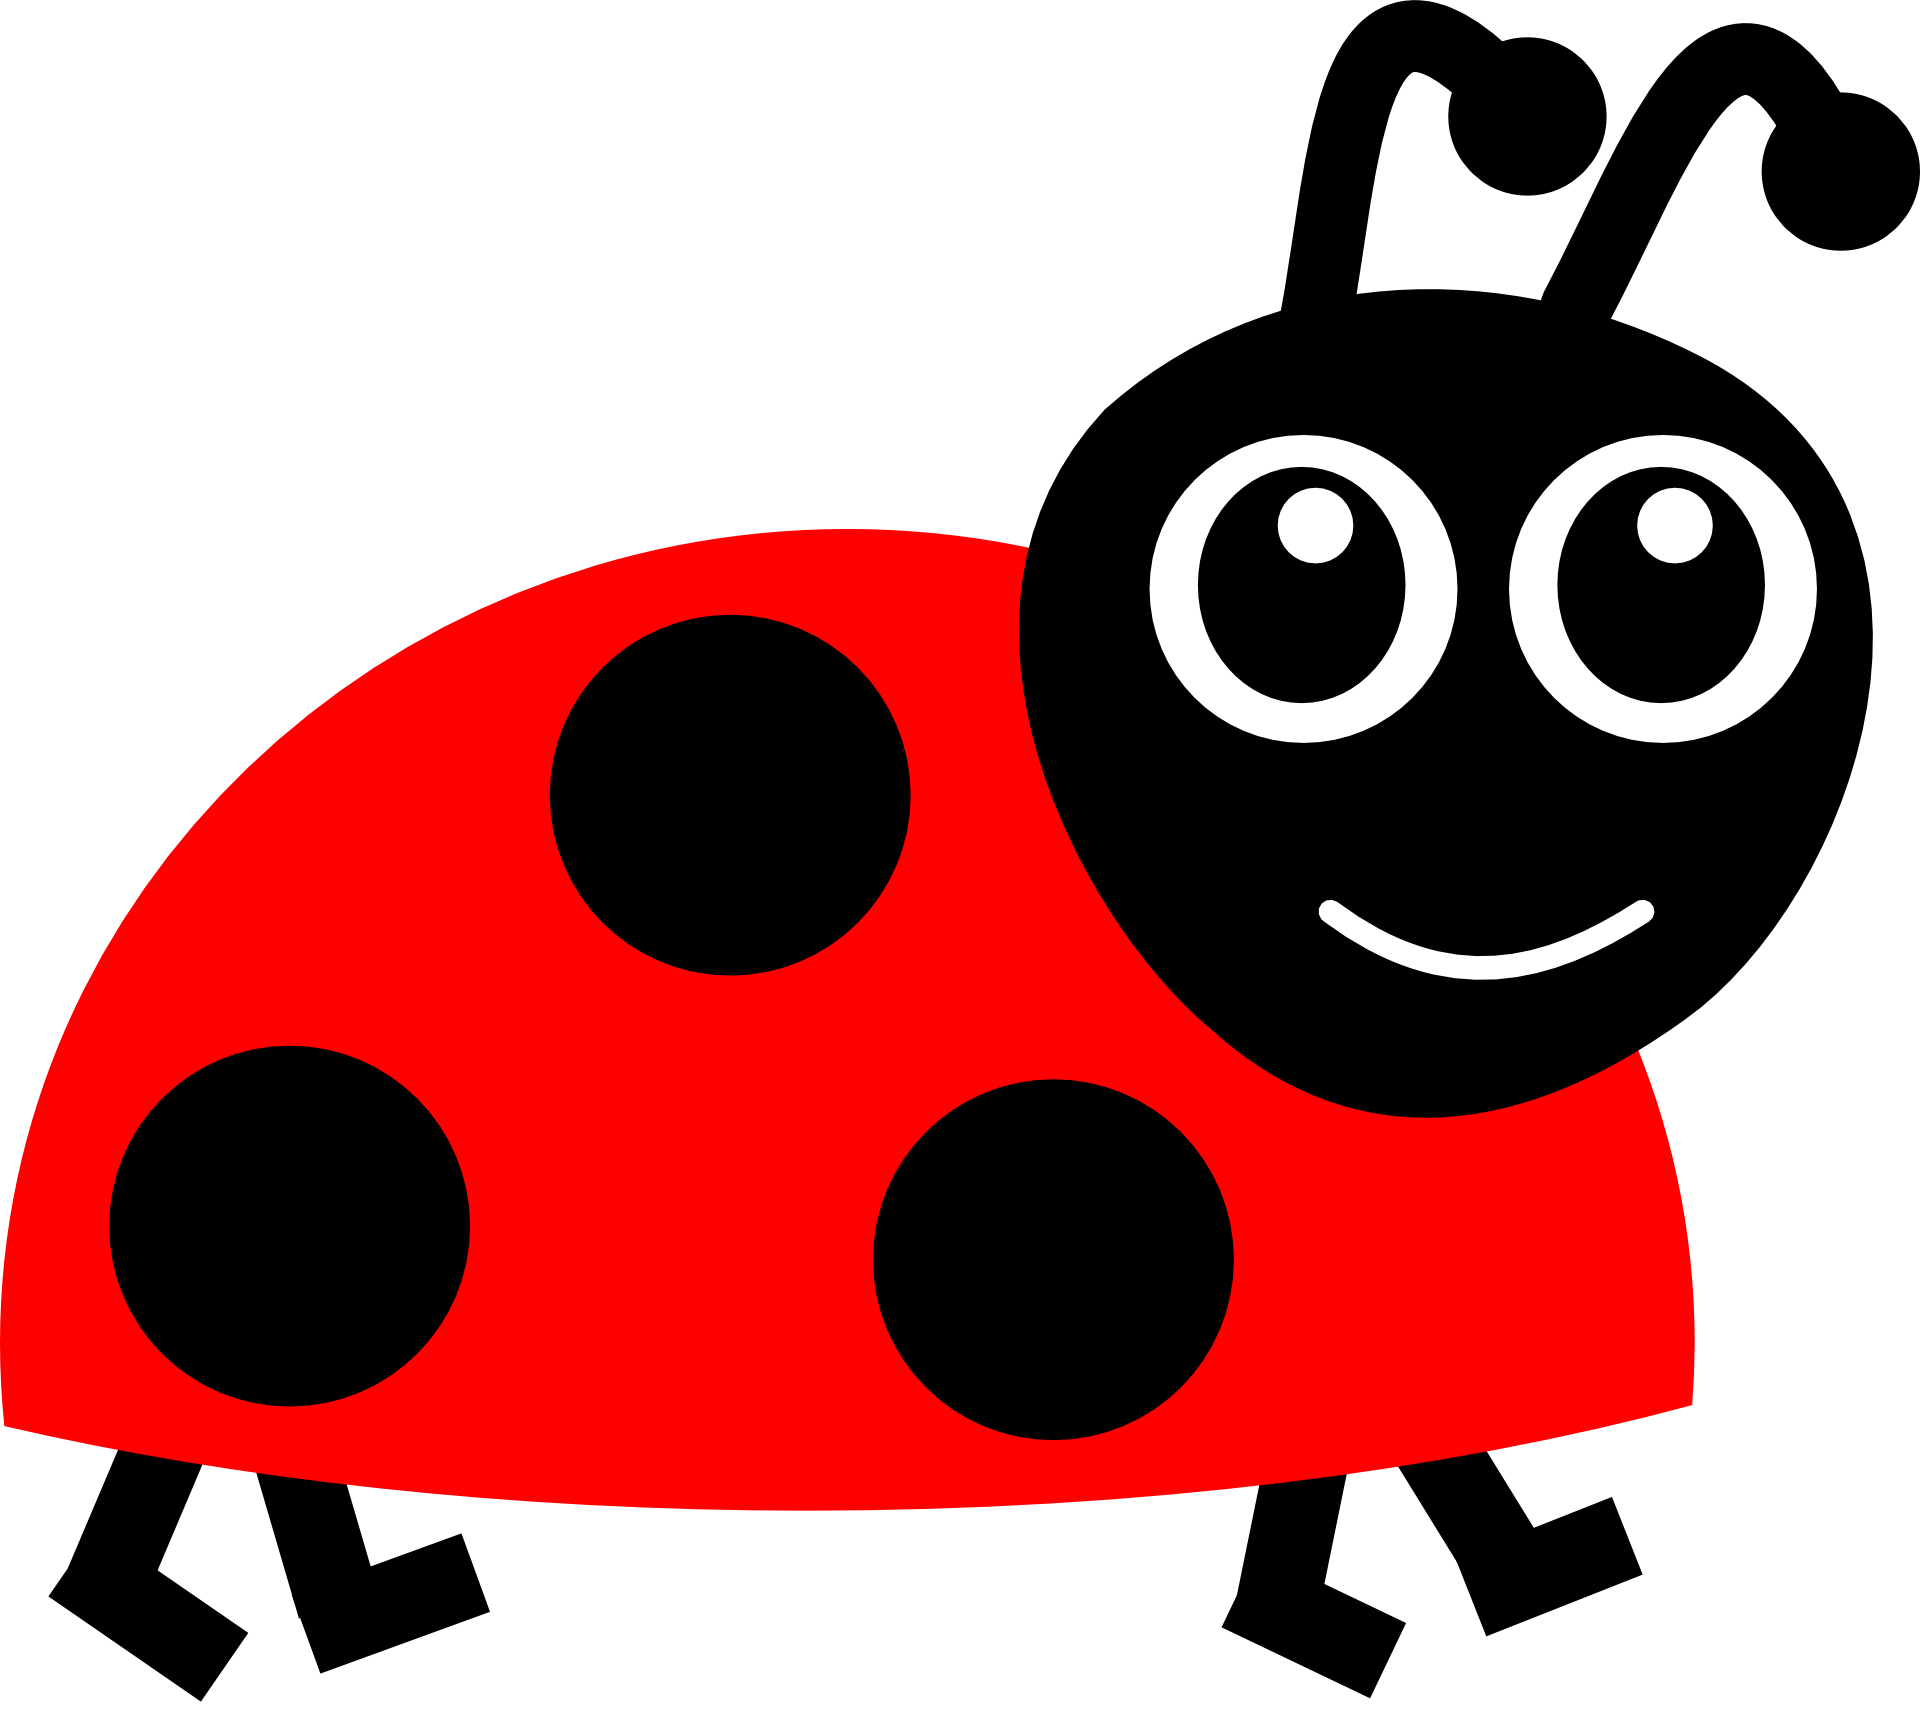 A Cartoon Ladybug cartoon character ladybug free image